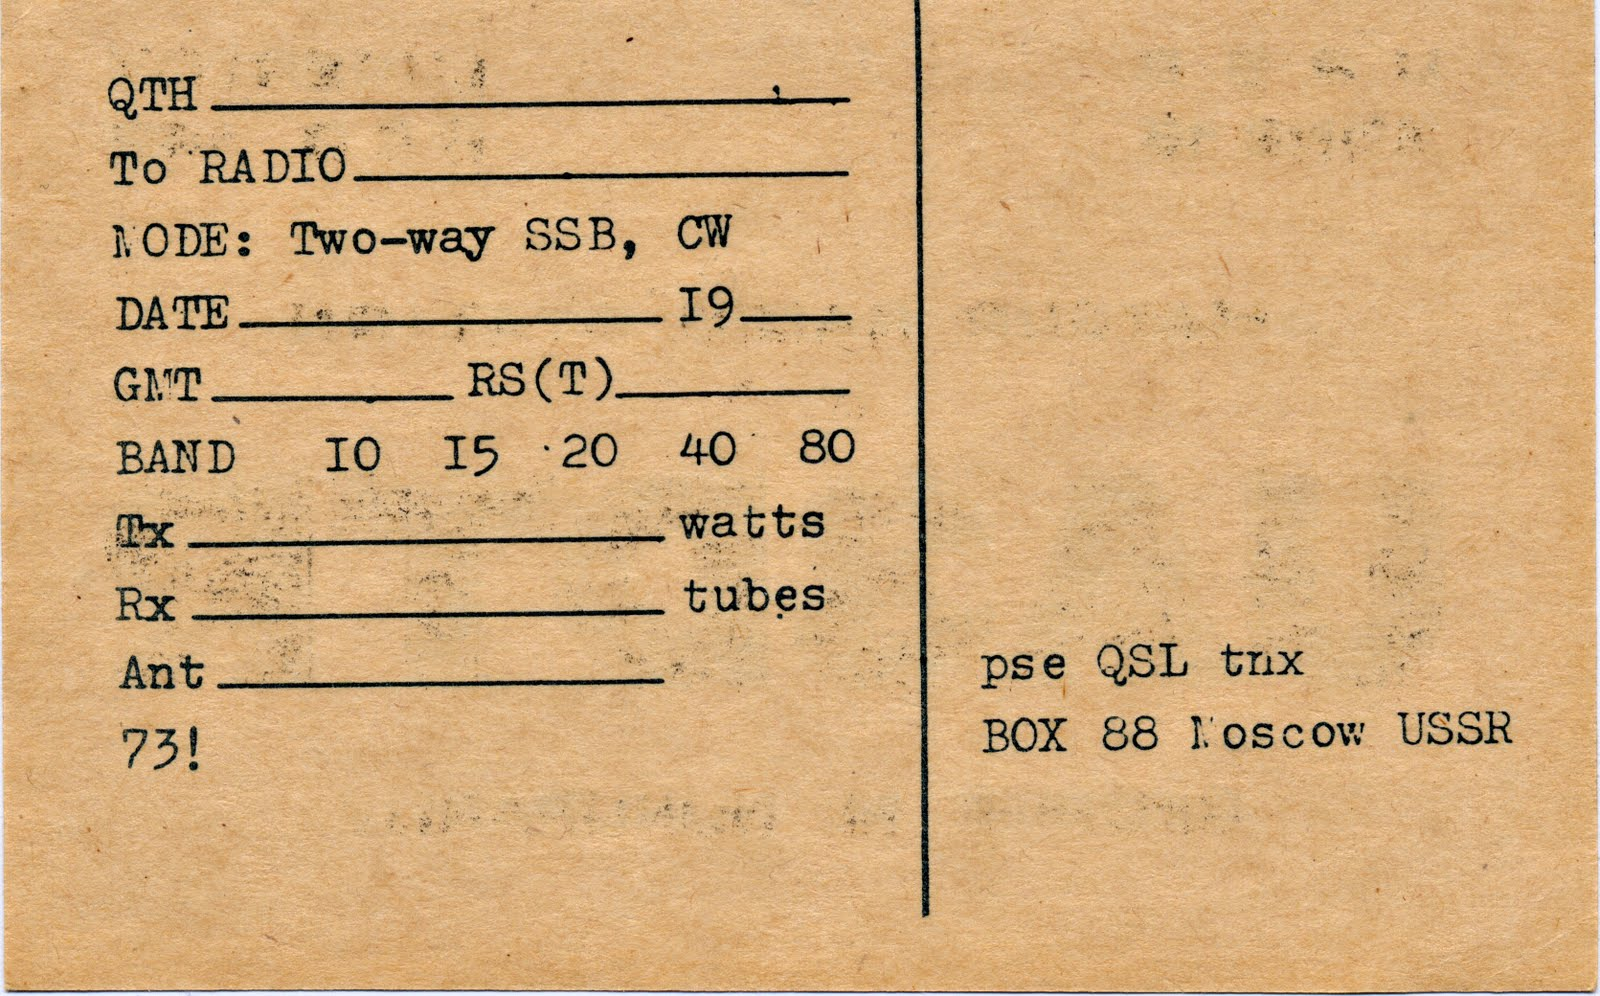 Pretty Qsl Cards Template Images Gallery >> This Is The Qsl Card I ...